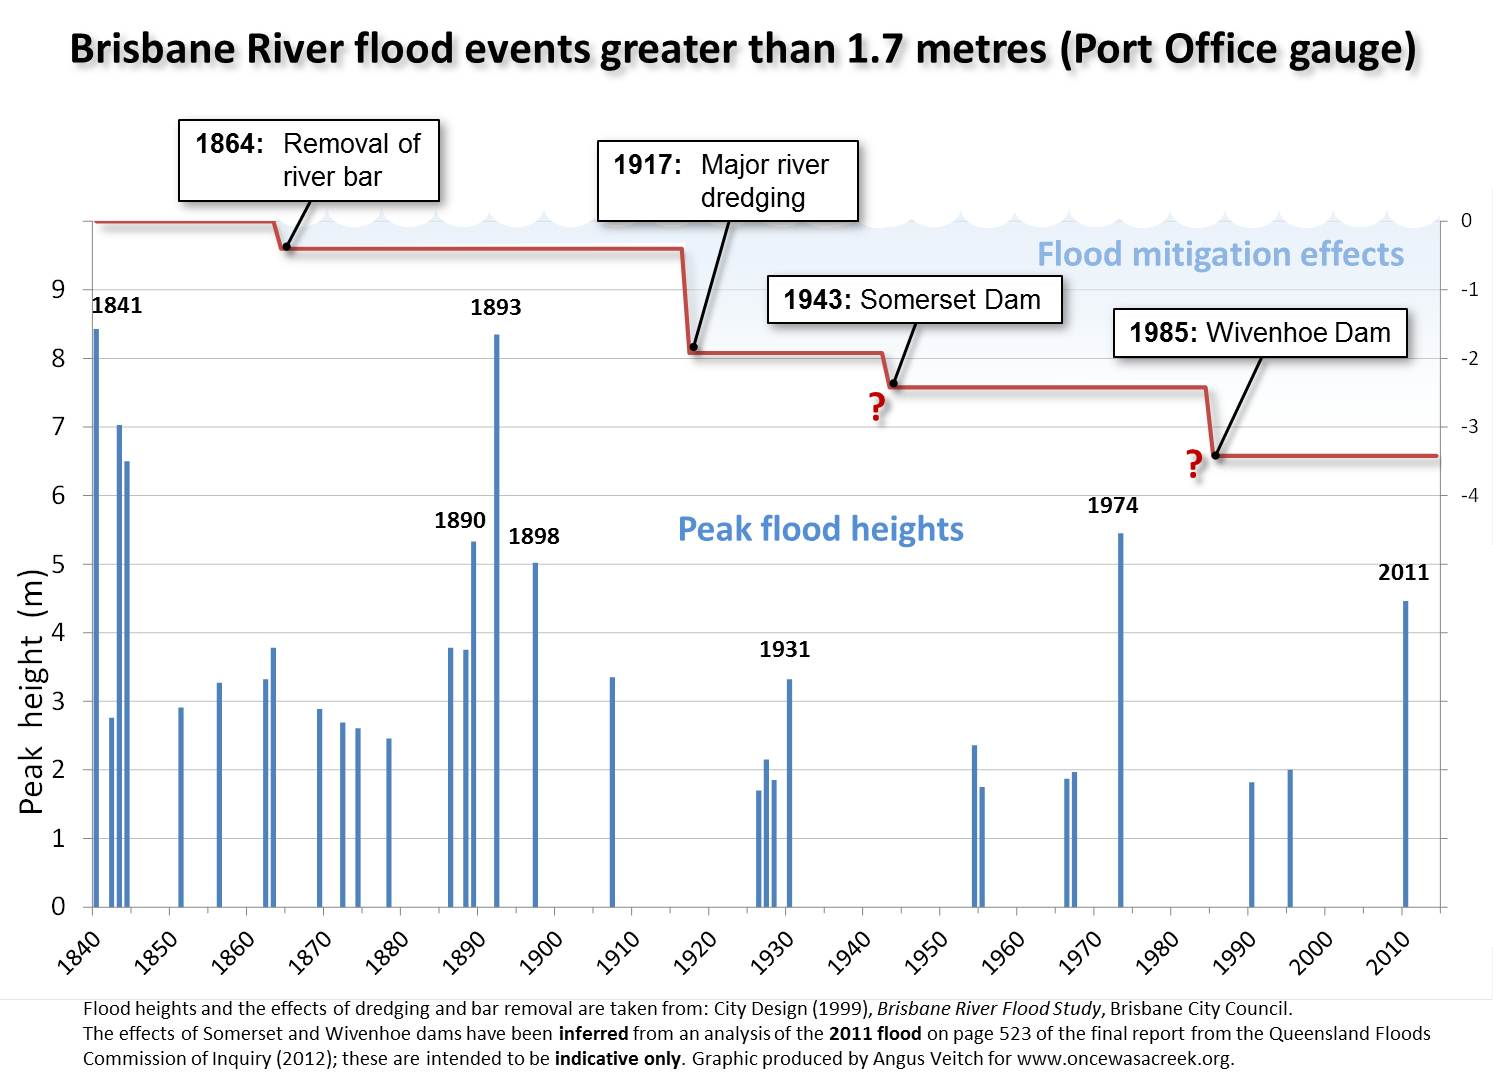 Flood events greater than 1.7m in the Brisbane River since 1841. Also shown are the estimated mitigating impacts of river works and the two dams. All data sourced from the Brisbane River Flood Study except the effect of the two dams, which is indicative only and has been inferred from an analysis on page 523 of the final report of the Flood Commission of Inquiry.